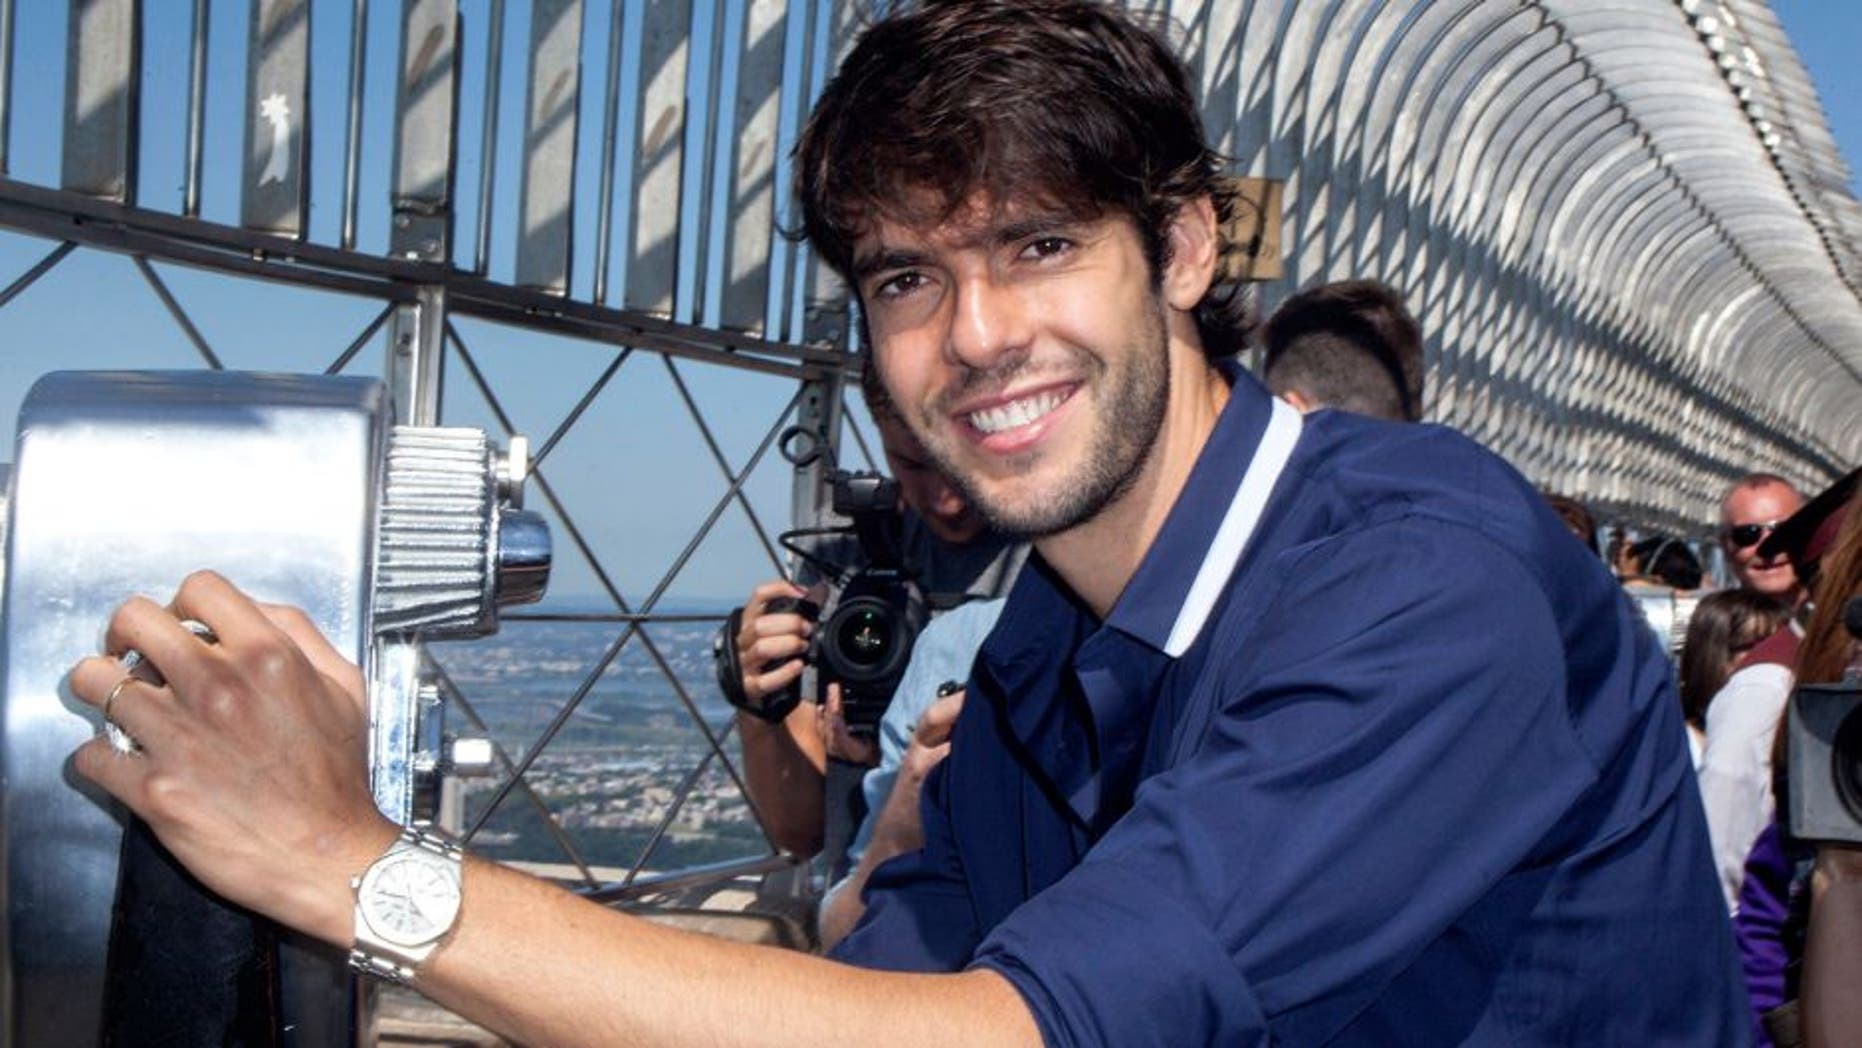 NEW YORK, NY - JULY 24: Kaka vists the observatory deck at The Empire State Building on July 24, 2015 in New York City. (Photo by Santiago Felipe/WireImage)